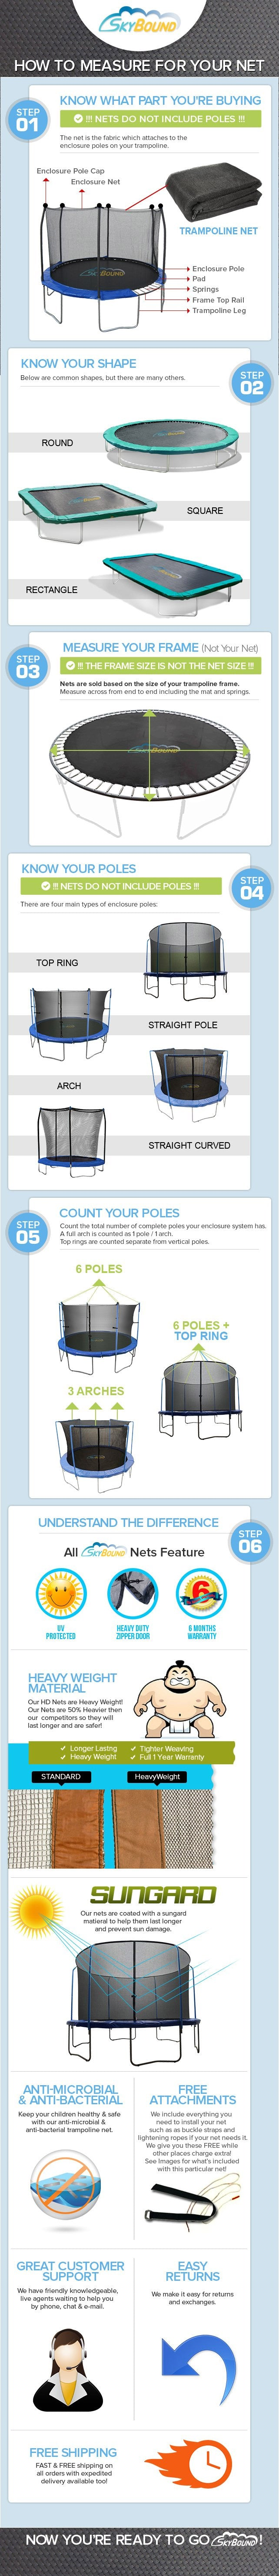 How To Measure A Safety Net on a Trampoline